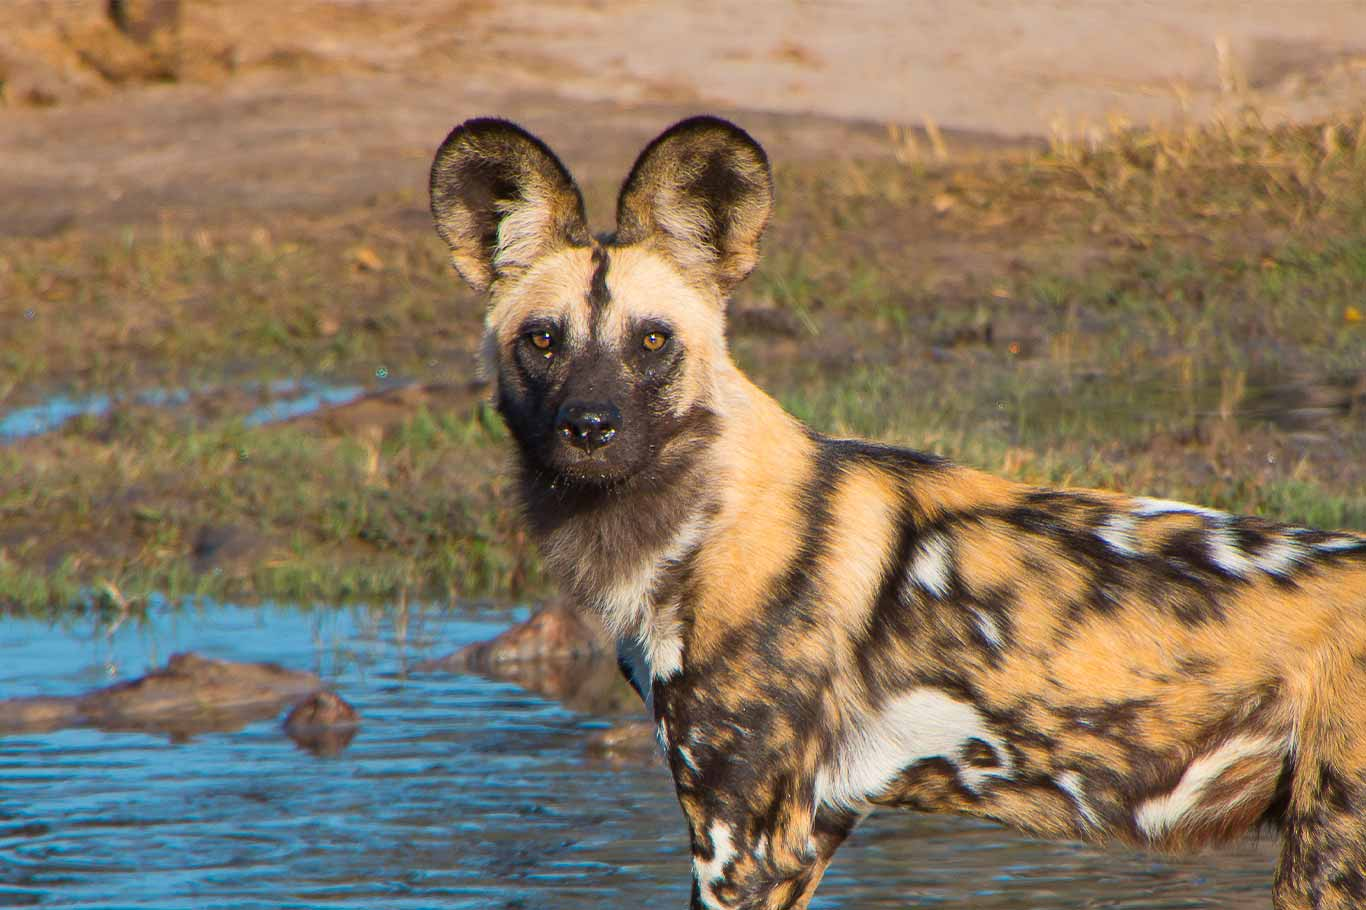 Beautiful Painted Dogs In Grave Danger! 3